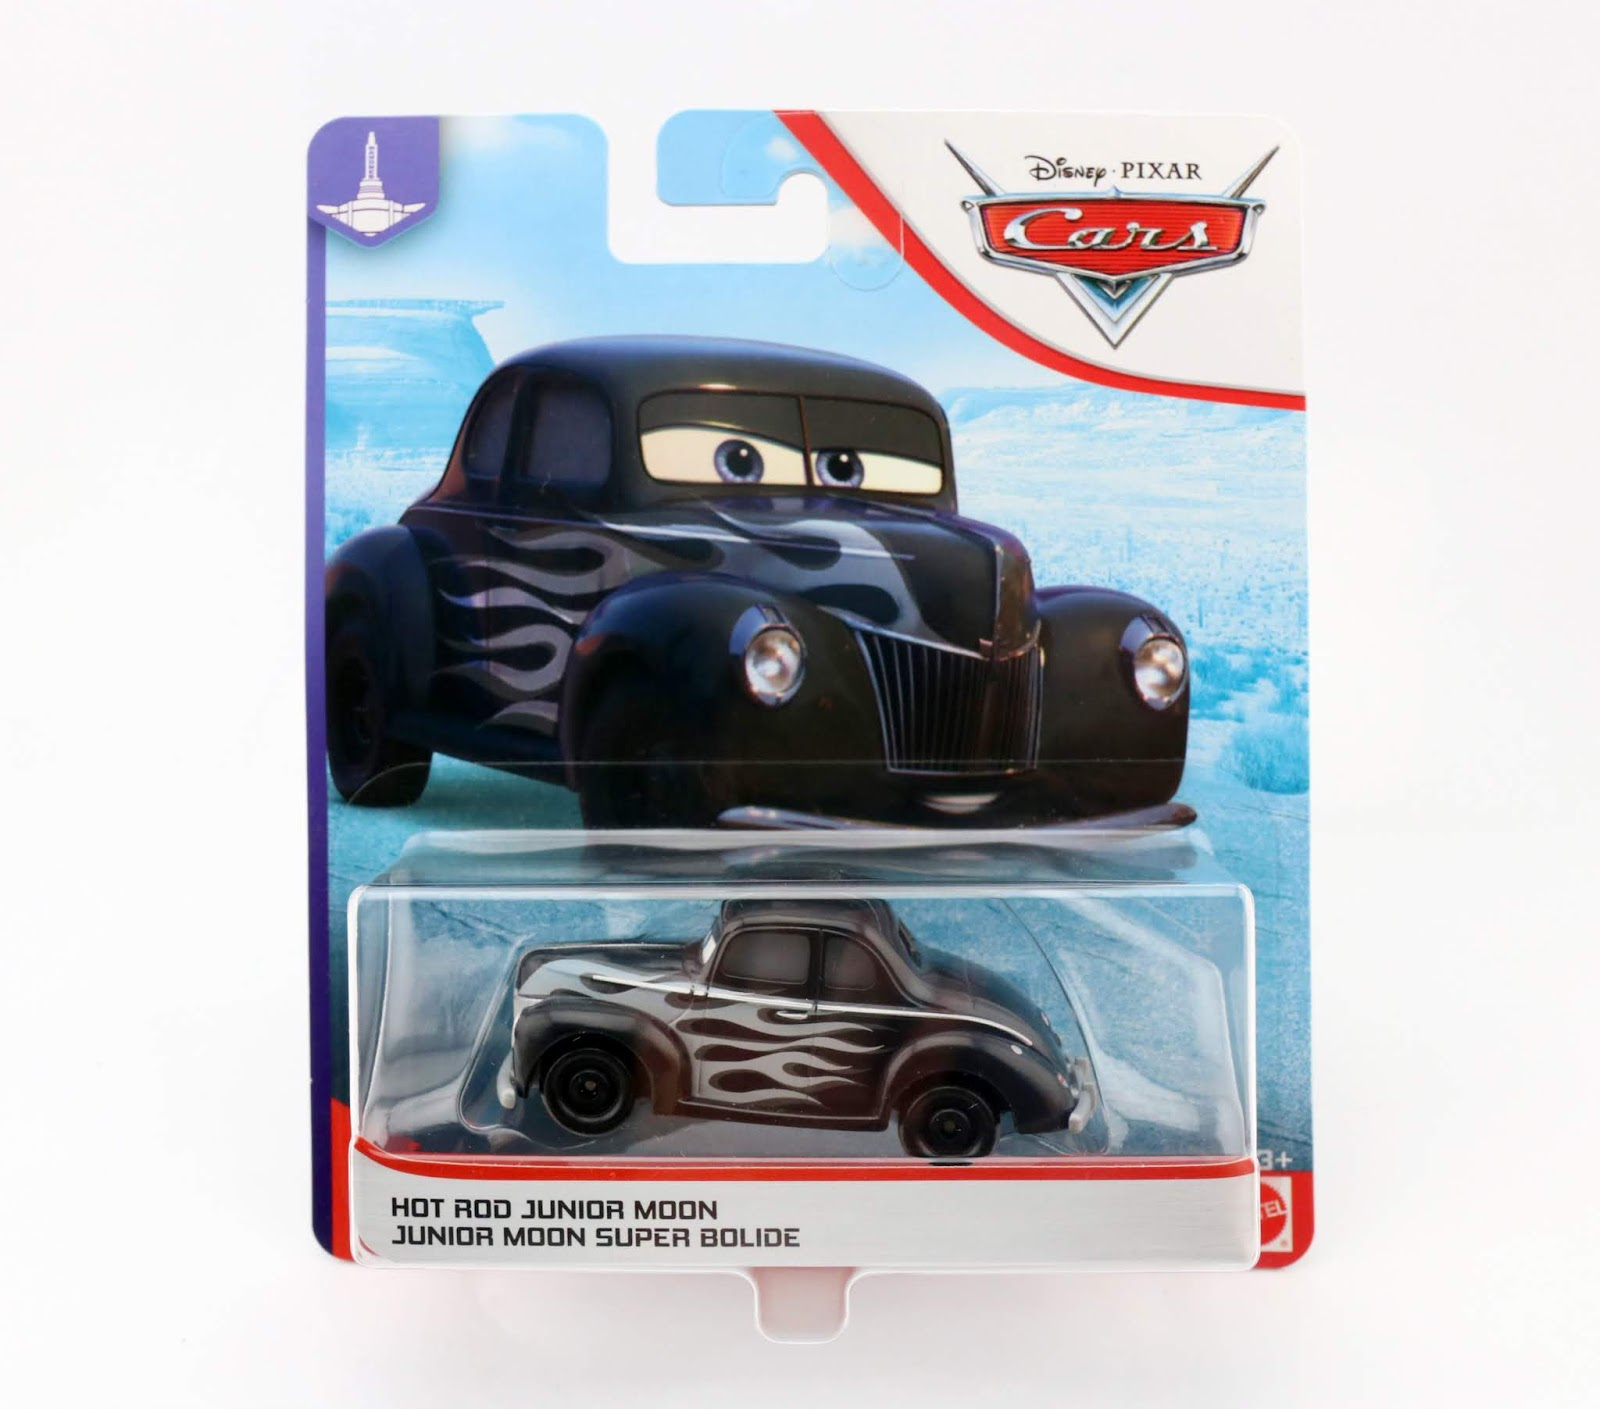 cars 3 hot rod junior moon diecast